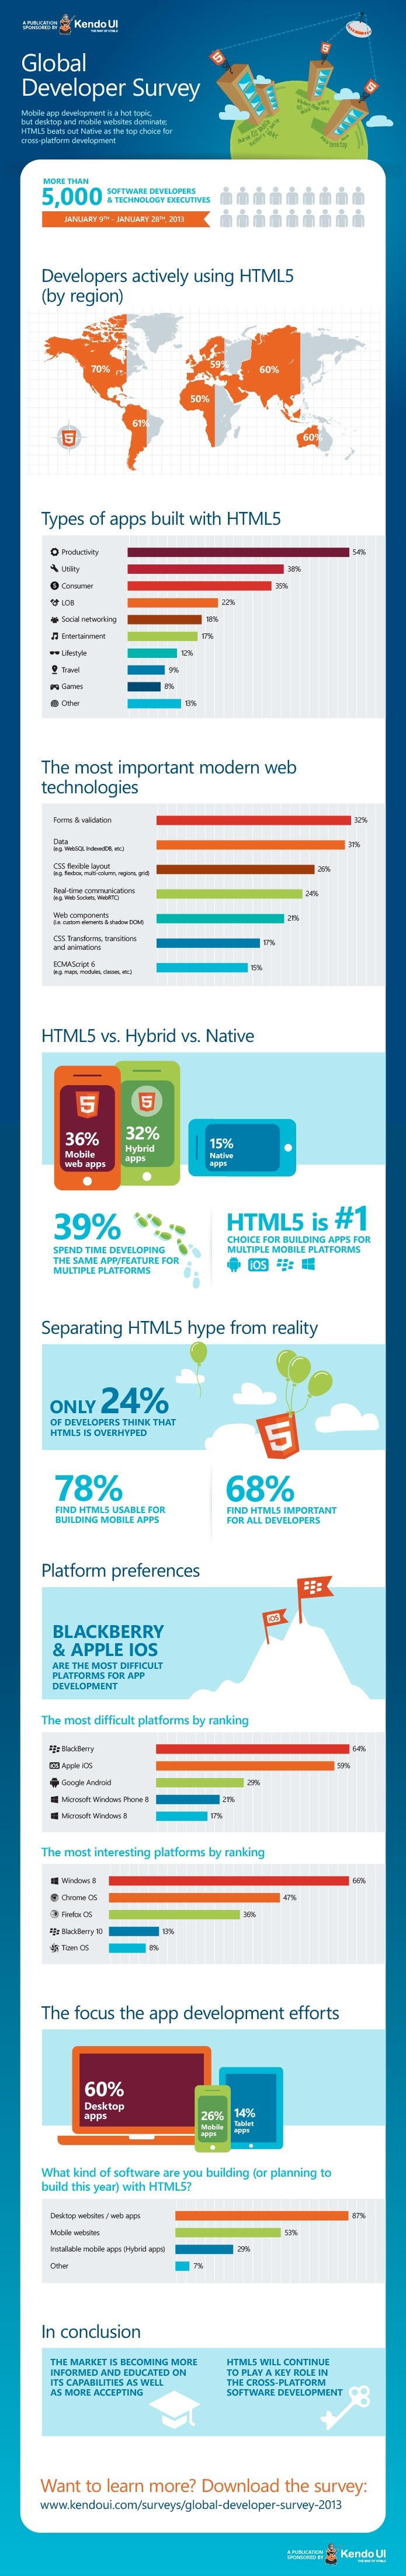 HTML5 infographic